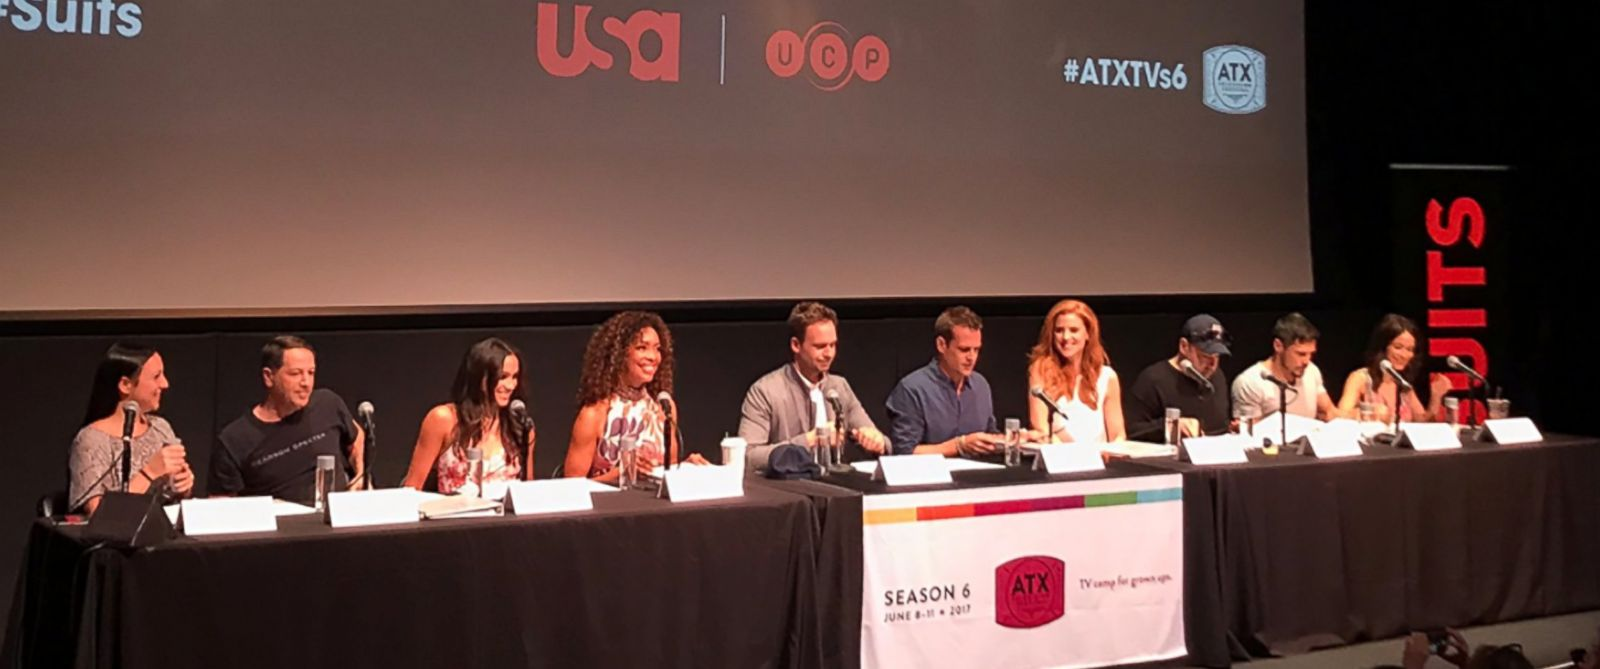 """PHOTO: This photo posted to the twitter handle of ATX TV Festival shows the cast of """"Suits"""" celebrating 100 episodes in Austin, TX, 11 June 2017."""